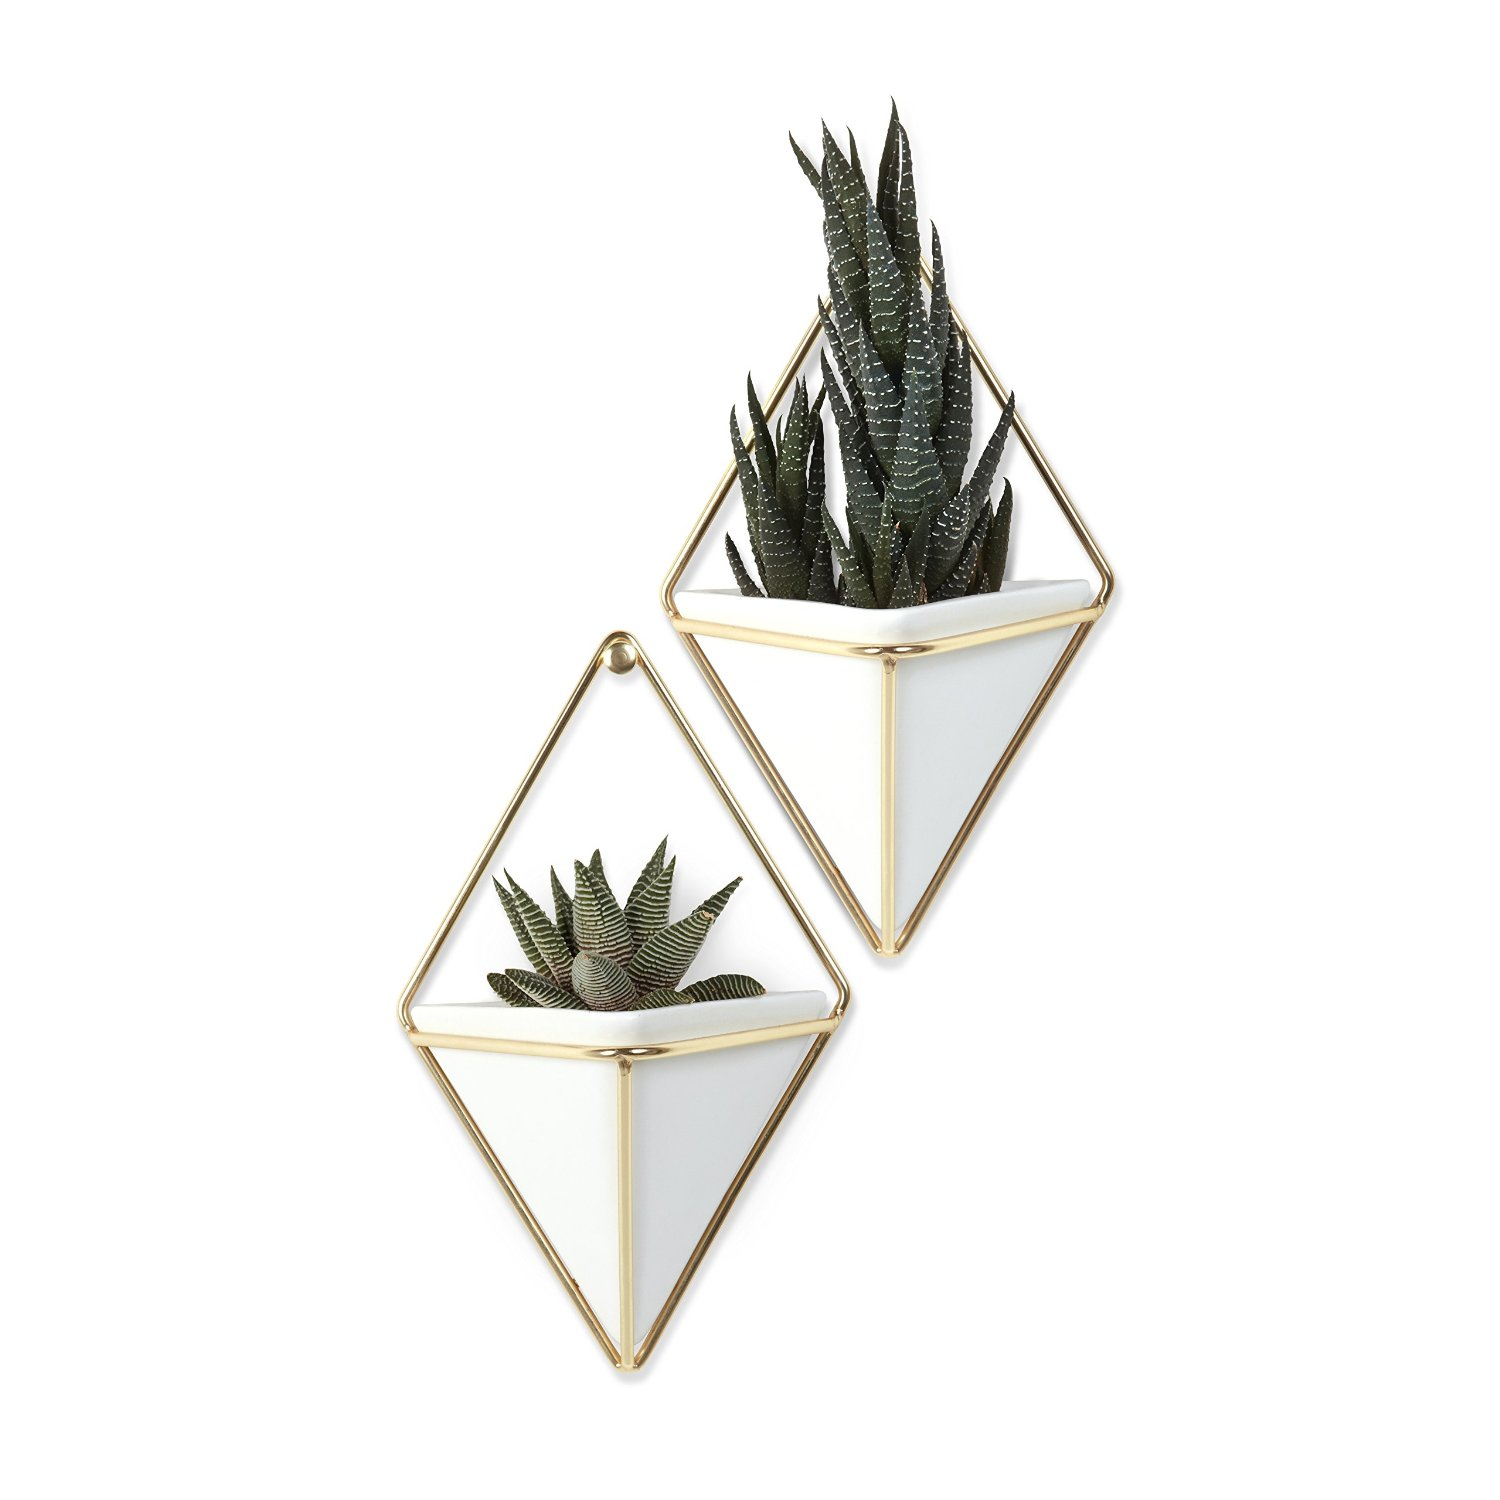 14 Ways to Display Succulents - Wall Pockets